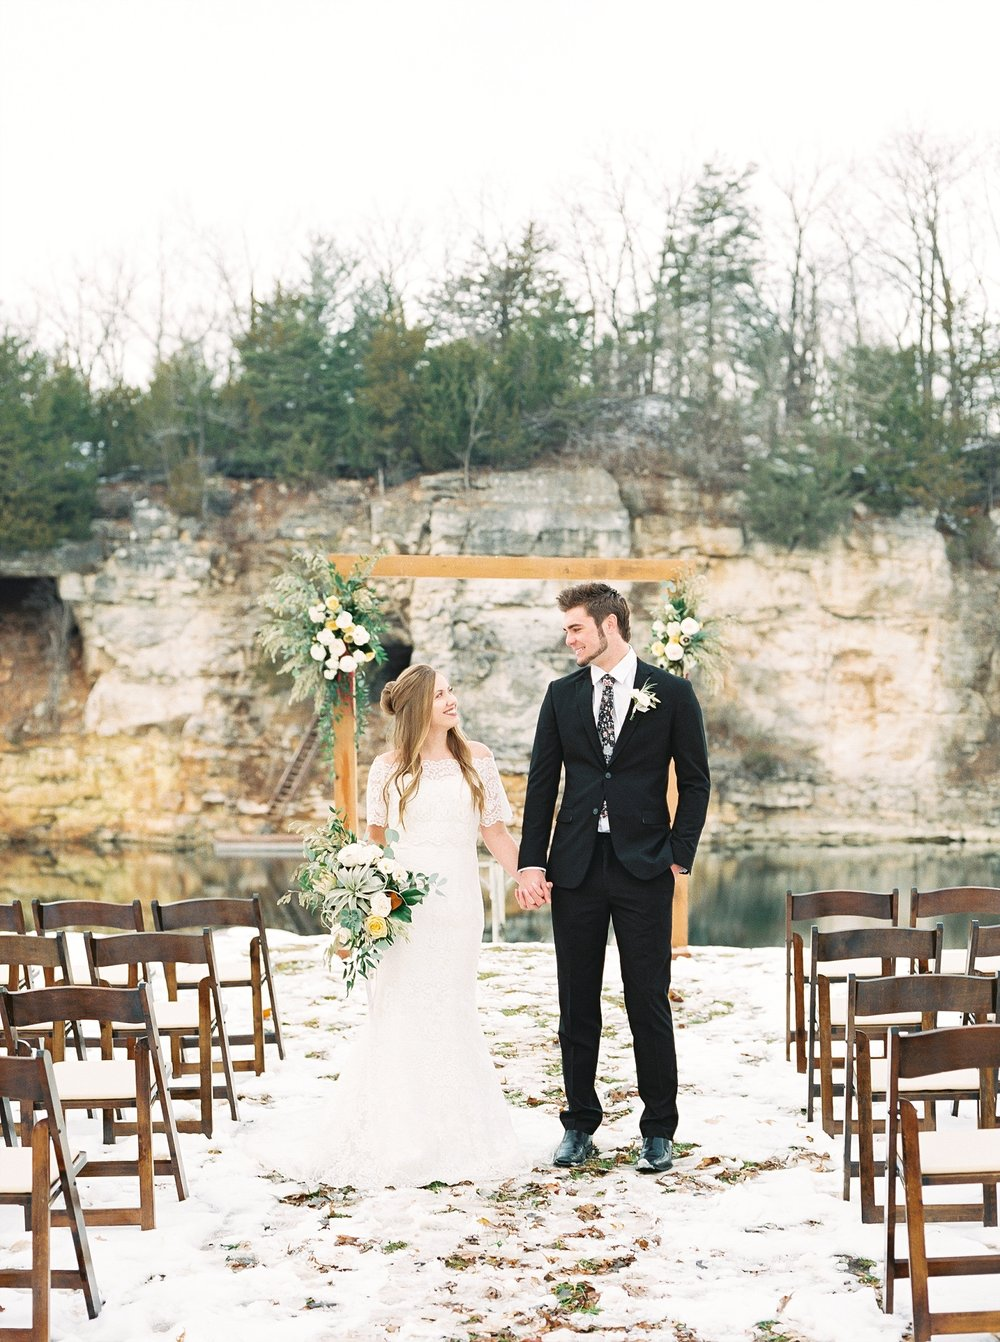 Snowy Winter Wedding at Wildcliff Events Lake With Earthy Jewel Tones and Organic Refined Style by Kelsi Kliethermes Photography Kansas City Missouri Wedding Photographer_0116.jpg